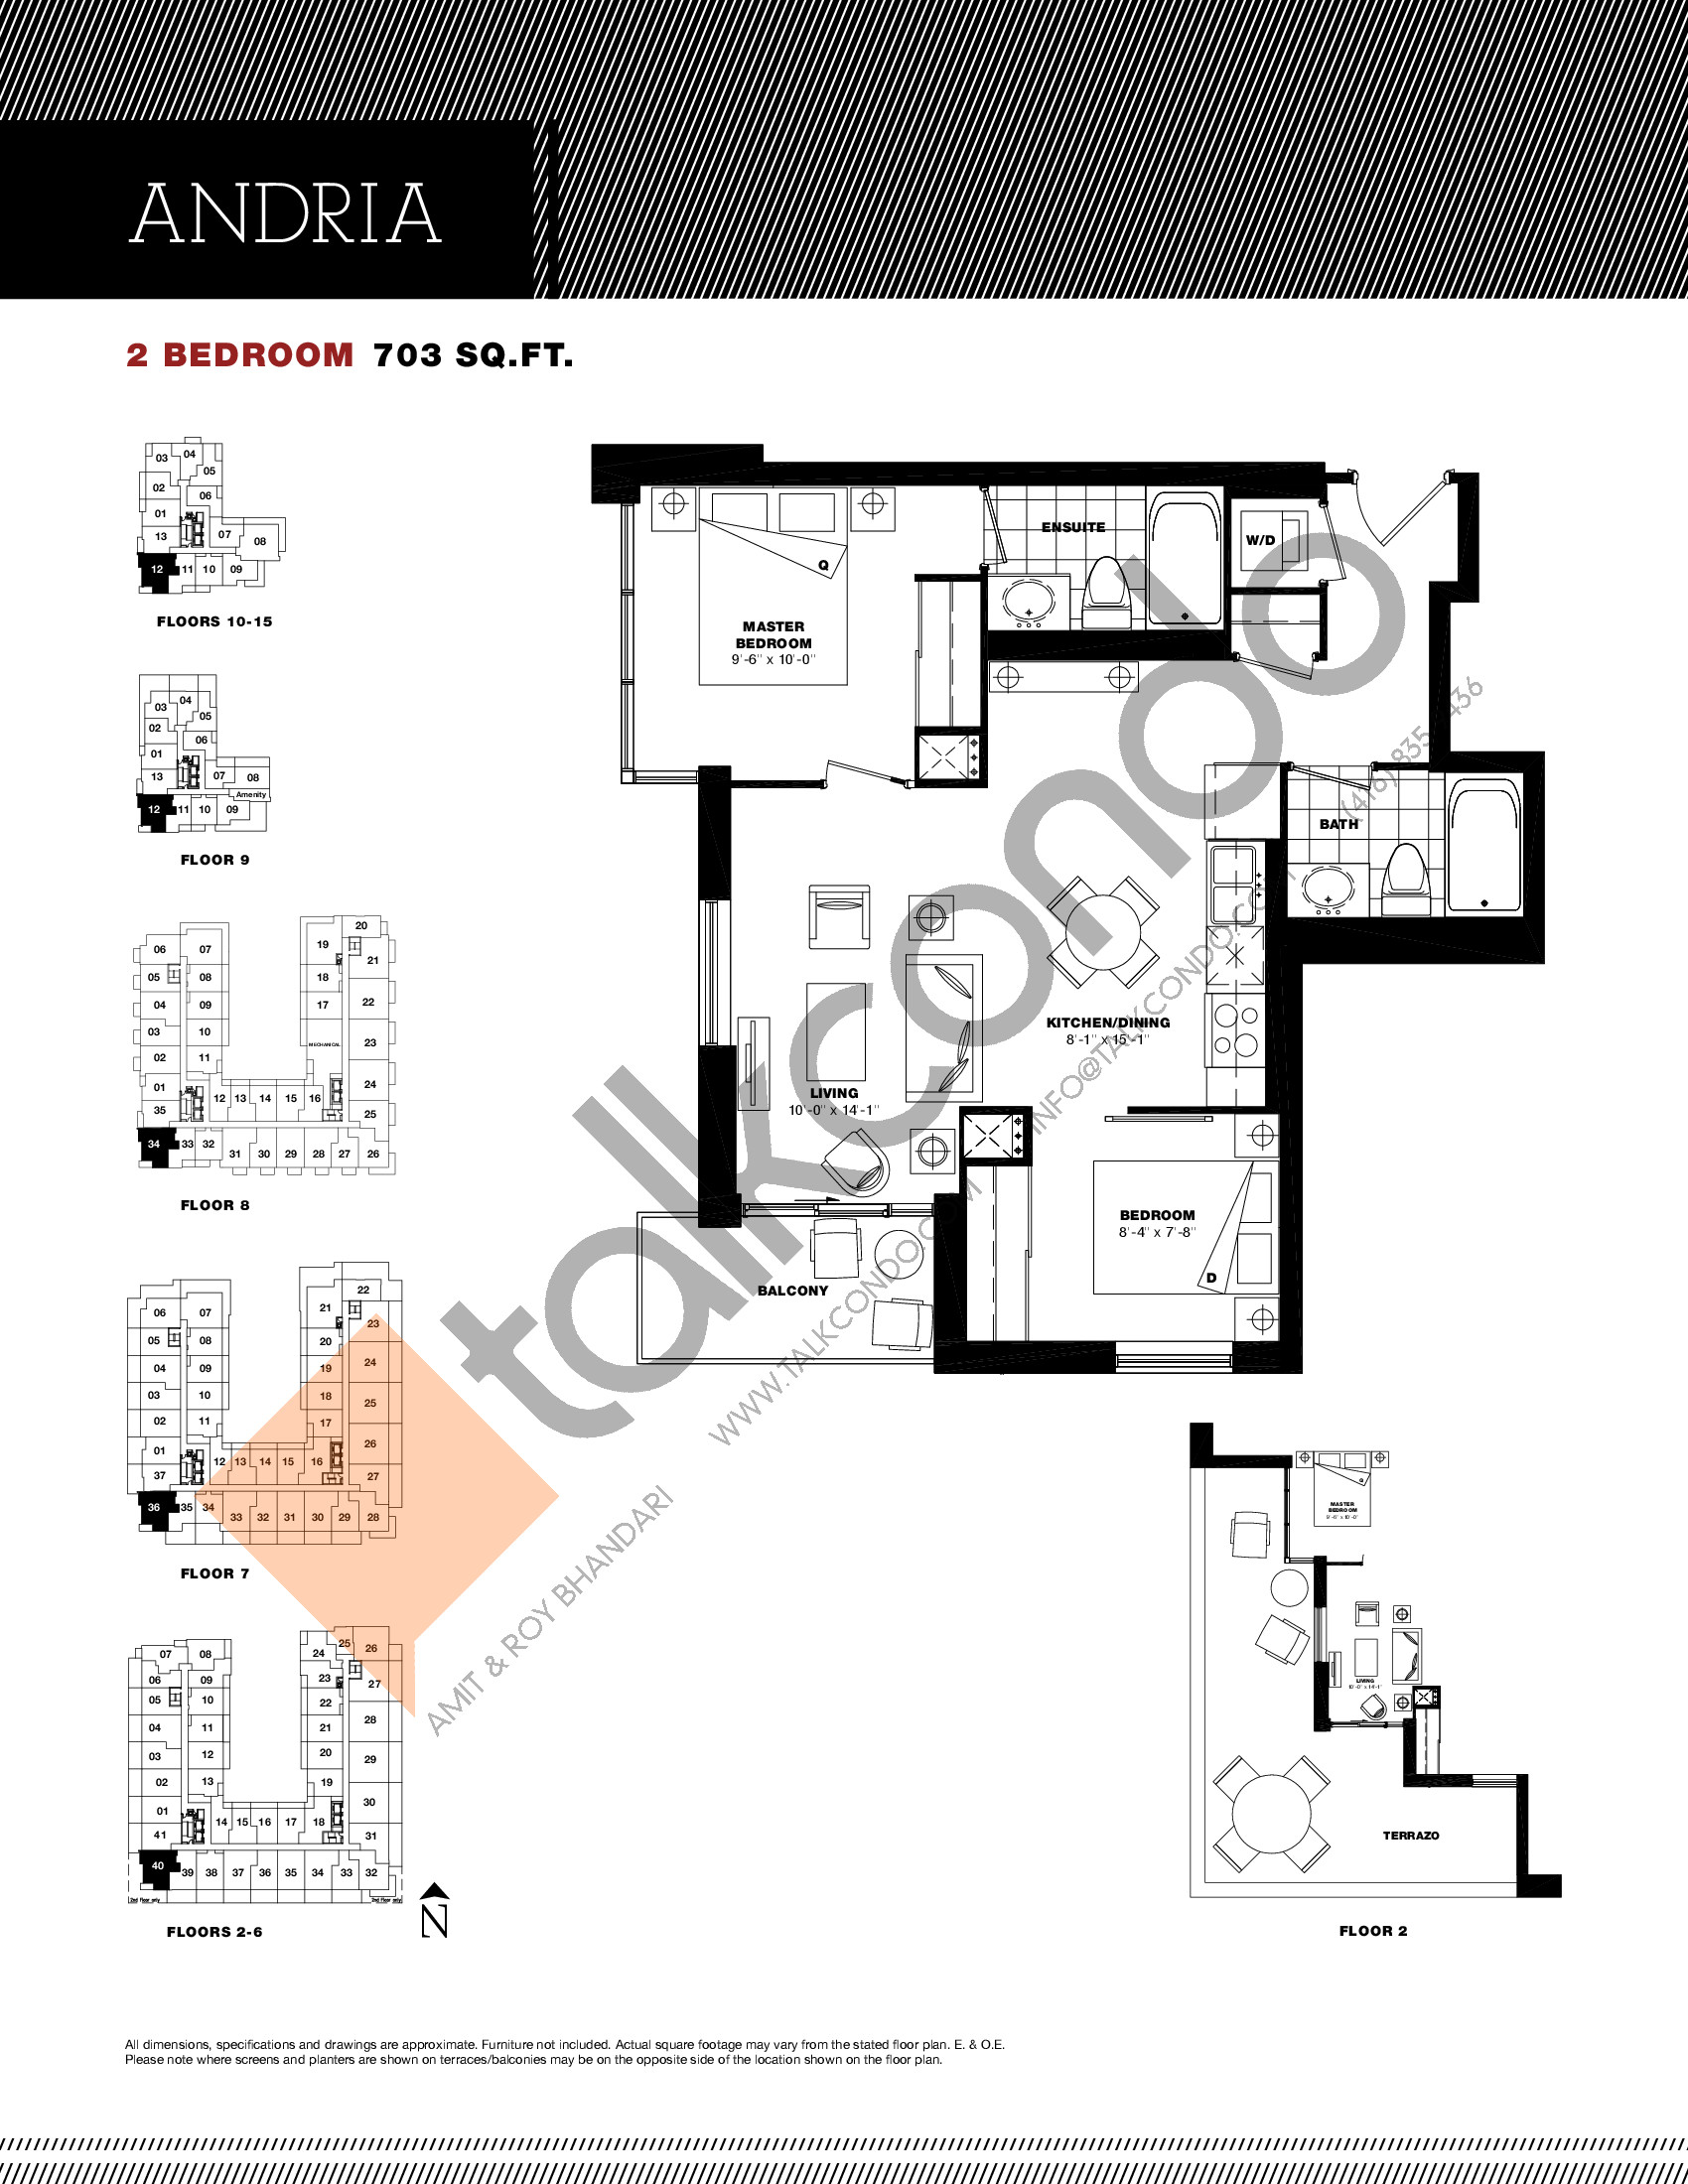 Andria Floor Plan at Residenze Palazzo at Treviso 3 Condos - 703 sq.ft